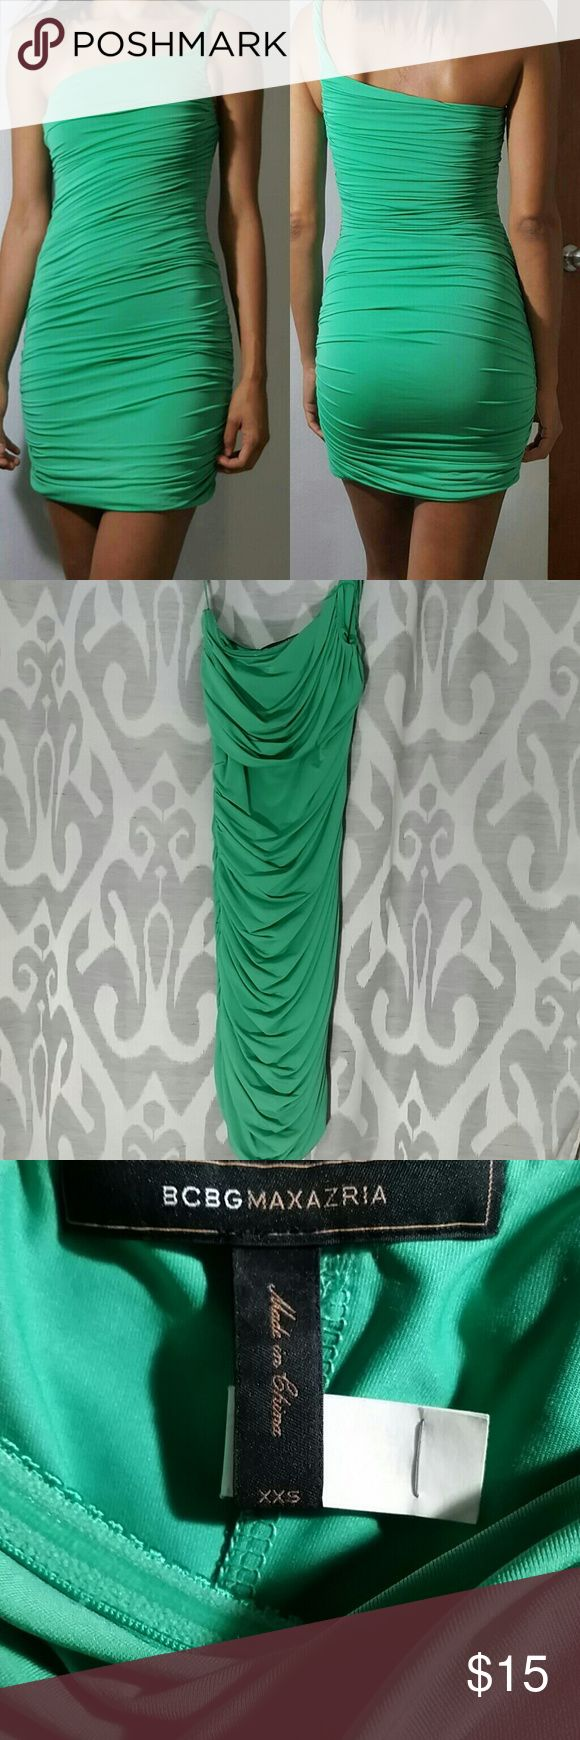 BCBGMAXAZRIA One-Shoulder Jersey Dress One-shoulder neckline beautiful, curve-enhancing cocktail dress. Ruched and Tight Fitting. Kelly Green. Fully lined. BCBGMaxAzria Dresses Mini